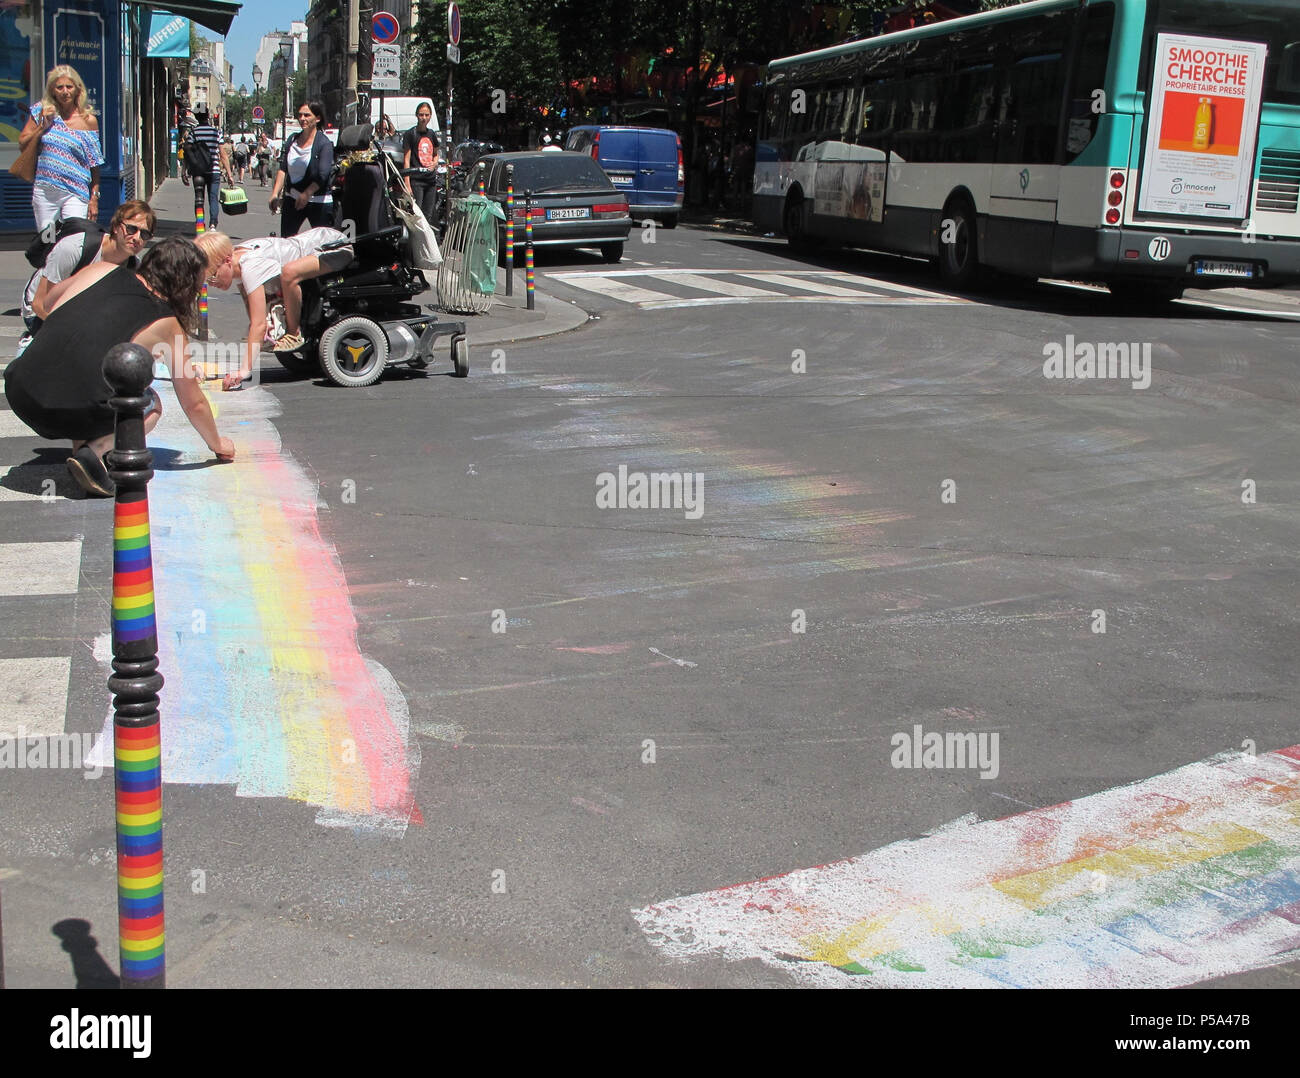 Paris, France. 26th June, 2018. Pedestrians draw a rainbow with chalk beside another rainbow, which was covered covered with paint at a street crossing. Shortly before a so-called pride parade in Paris, a homophobic gesture, in which rainbows were covered with paint, led to protests. The capital city is now planning to react by colouring additional sections. Credit: Ronja Bauer/dpa/Alamy Live News - Stock Image